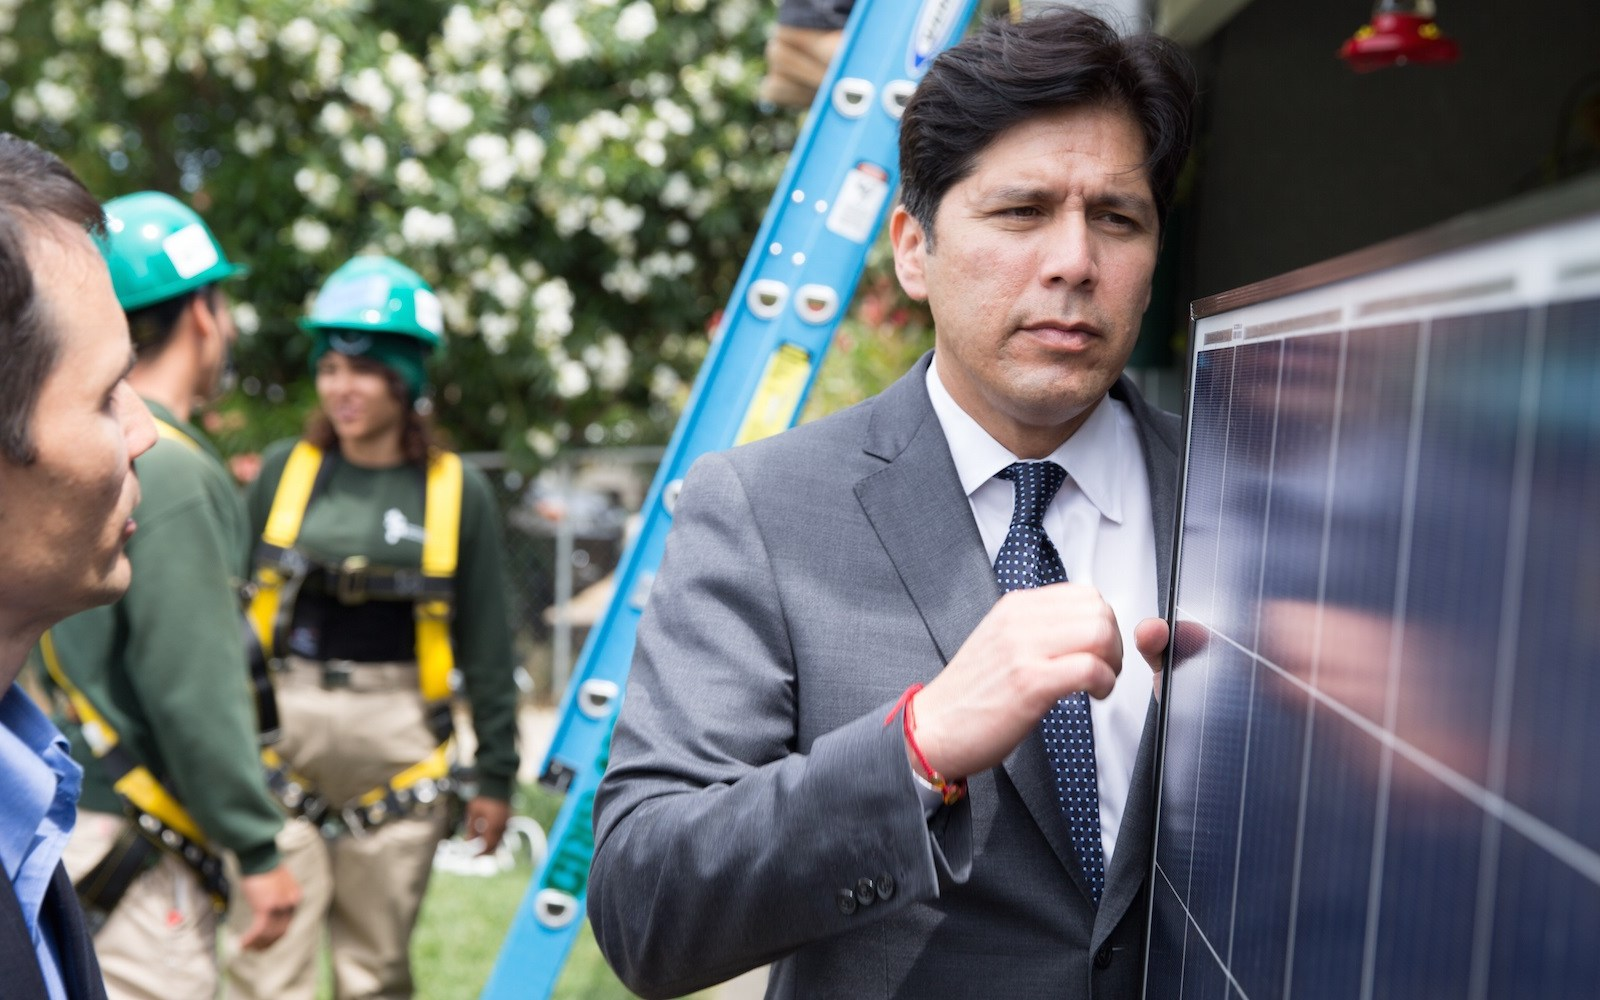 California should ignore the naysayers, and dive into wind and solar as they aim for 100% clean energy